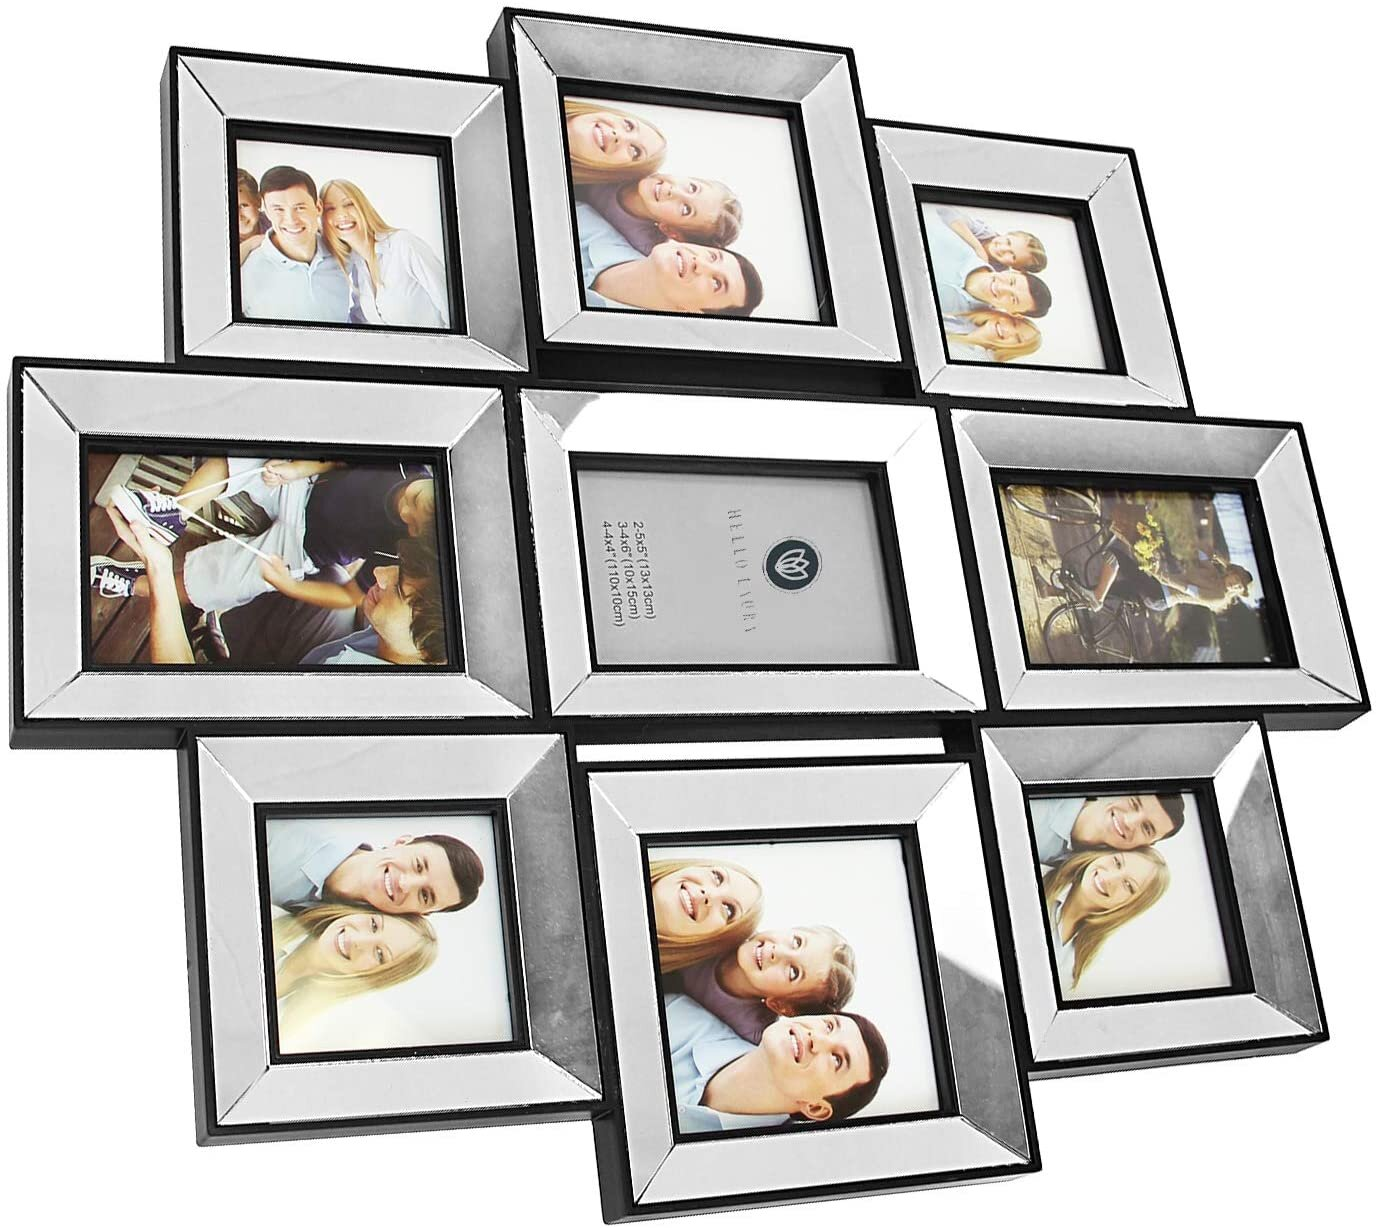 Hello Laura Photo Frame 21x24 Inner Mirror Picture Frame Made To Display Pictures 4x6 4x4 5x5 Wide Moulding Multi Selfie Gallery Collage Wall Hanging Wall Mounting Design Wayfair Ca